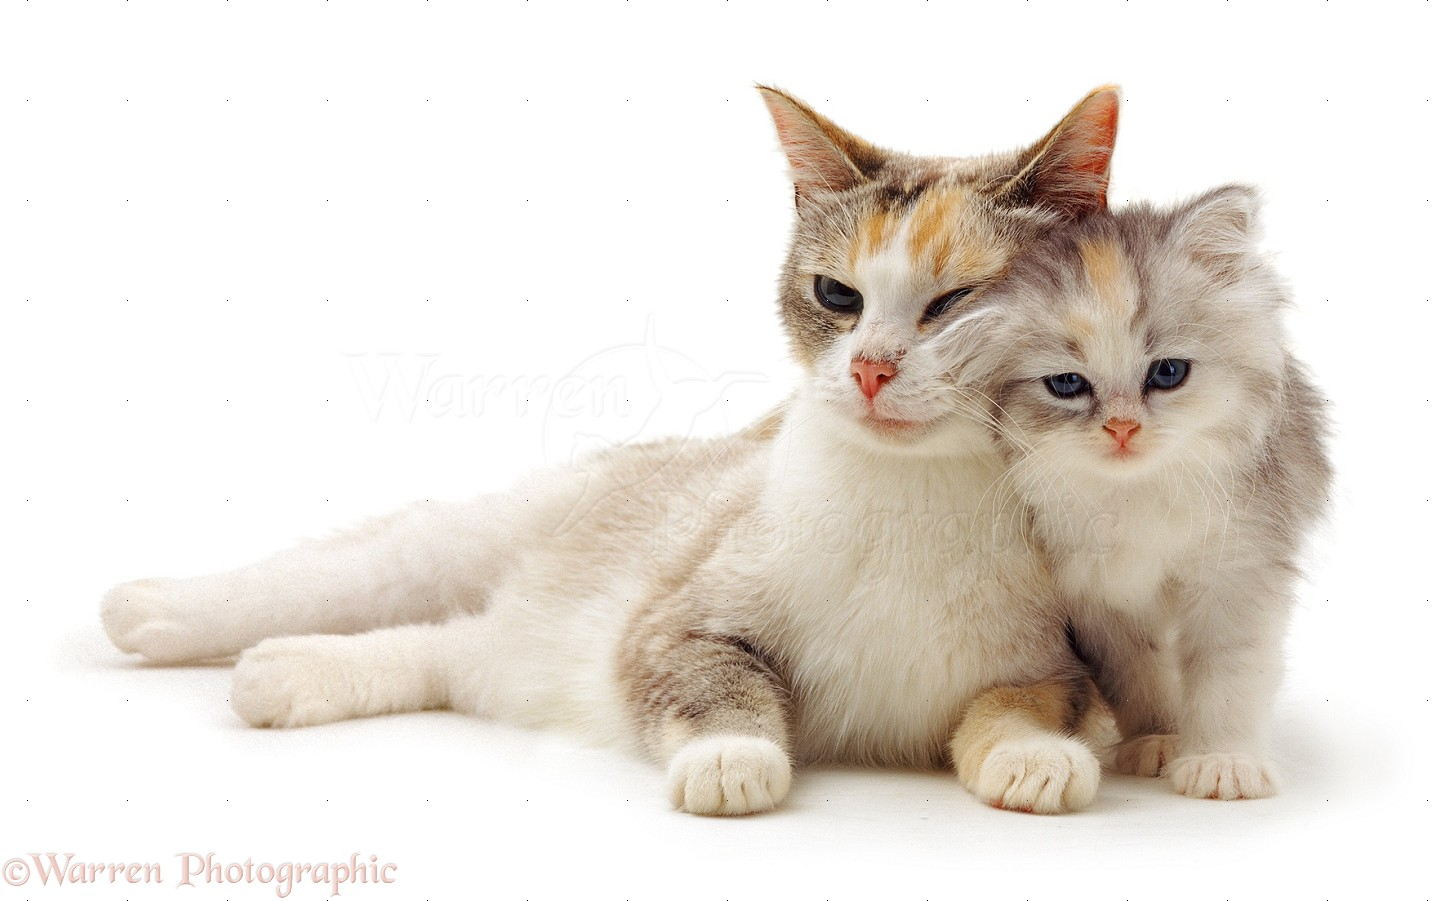 cute cat and kitten photo wp14196